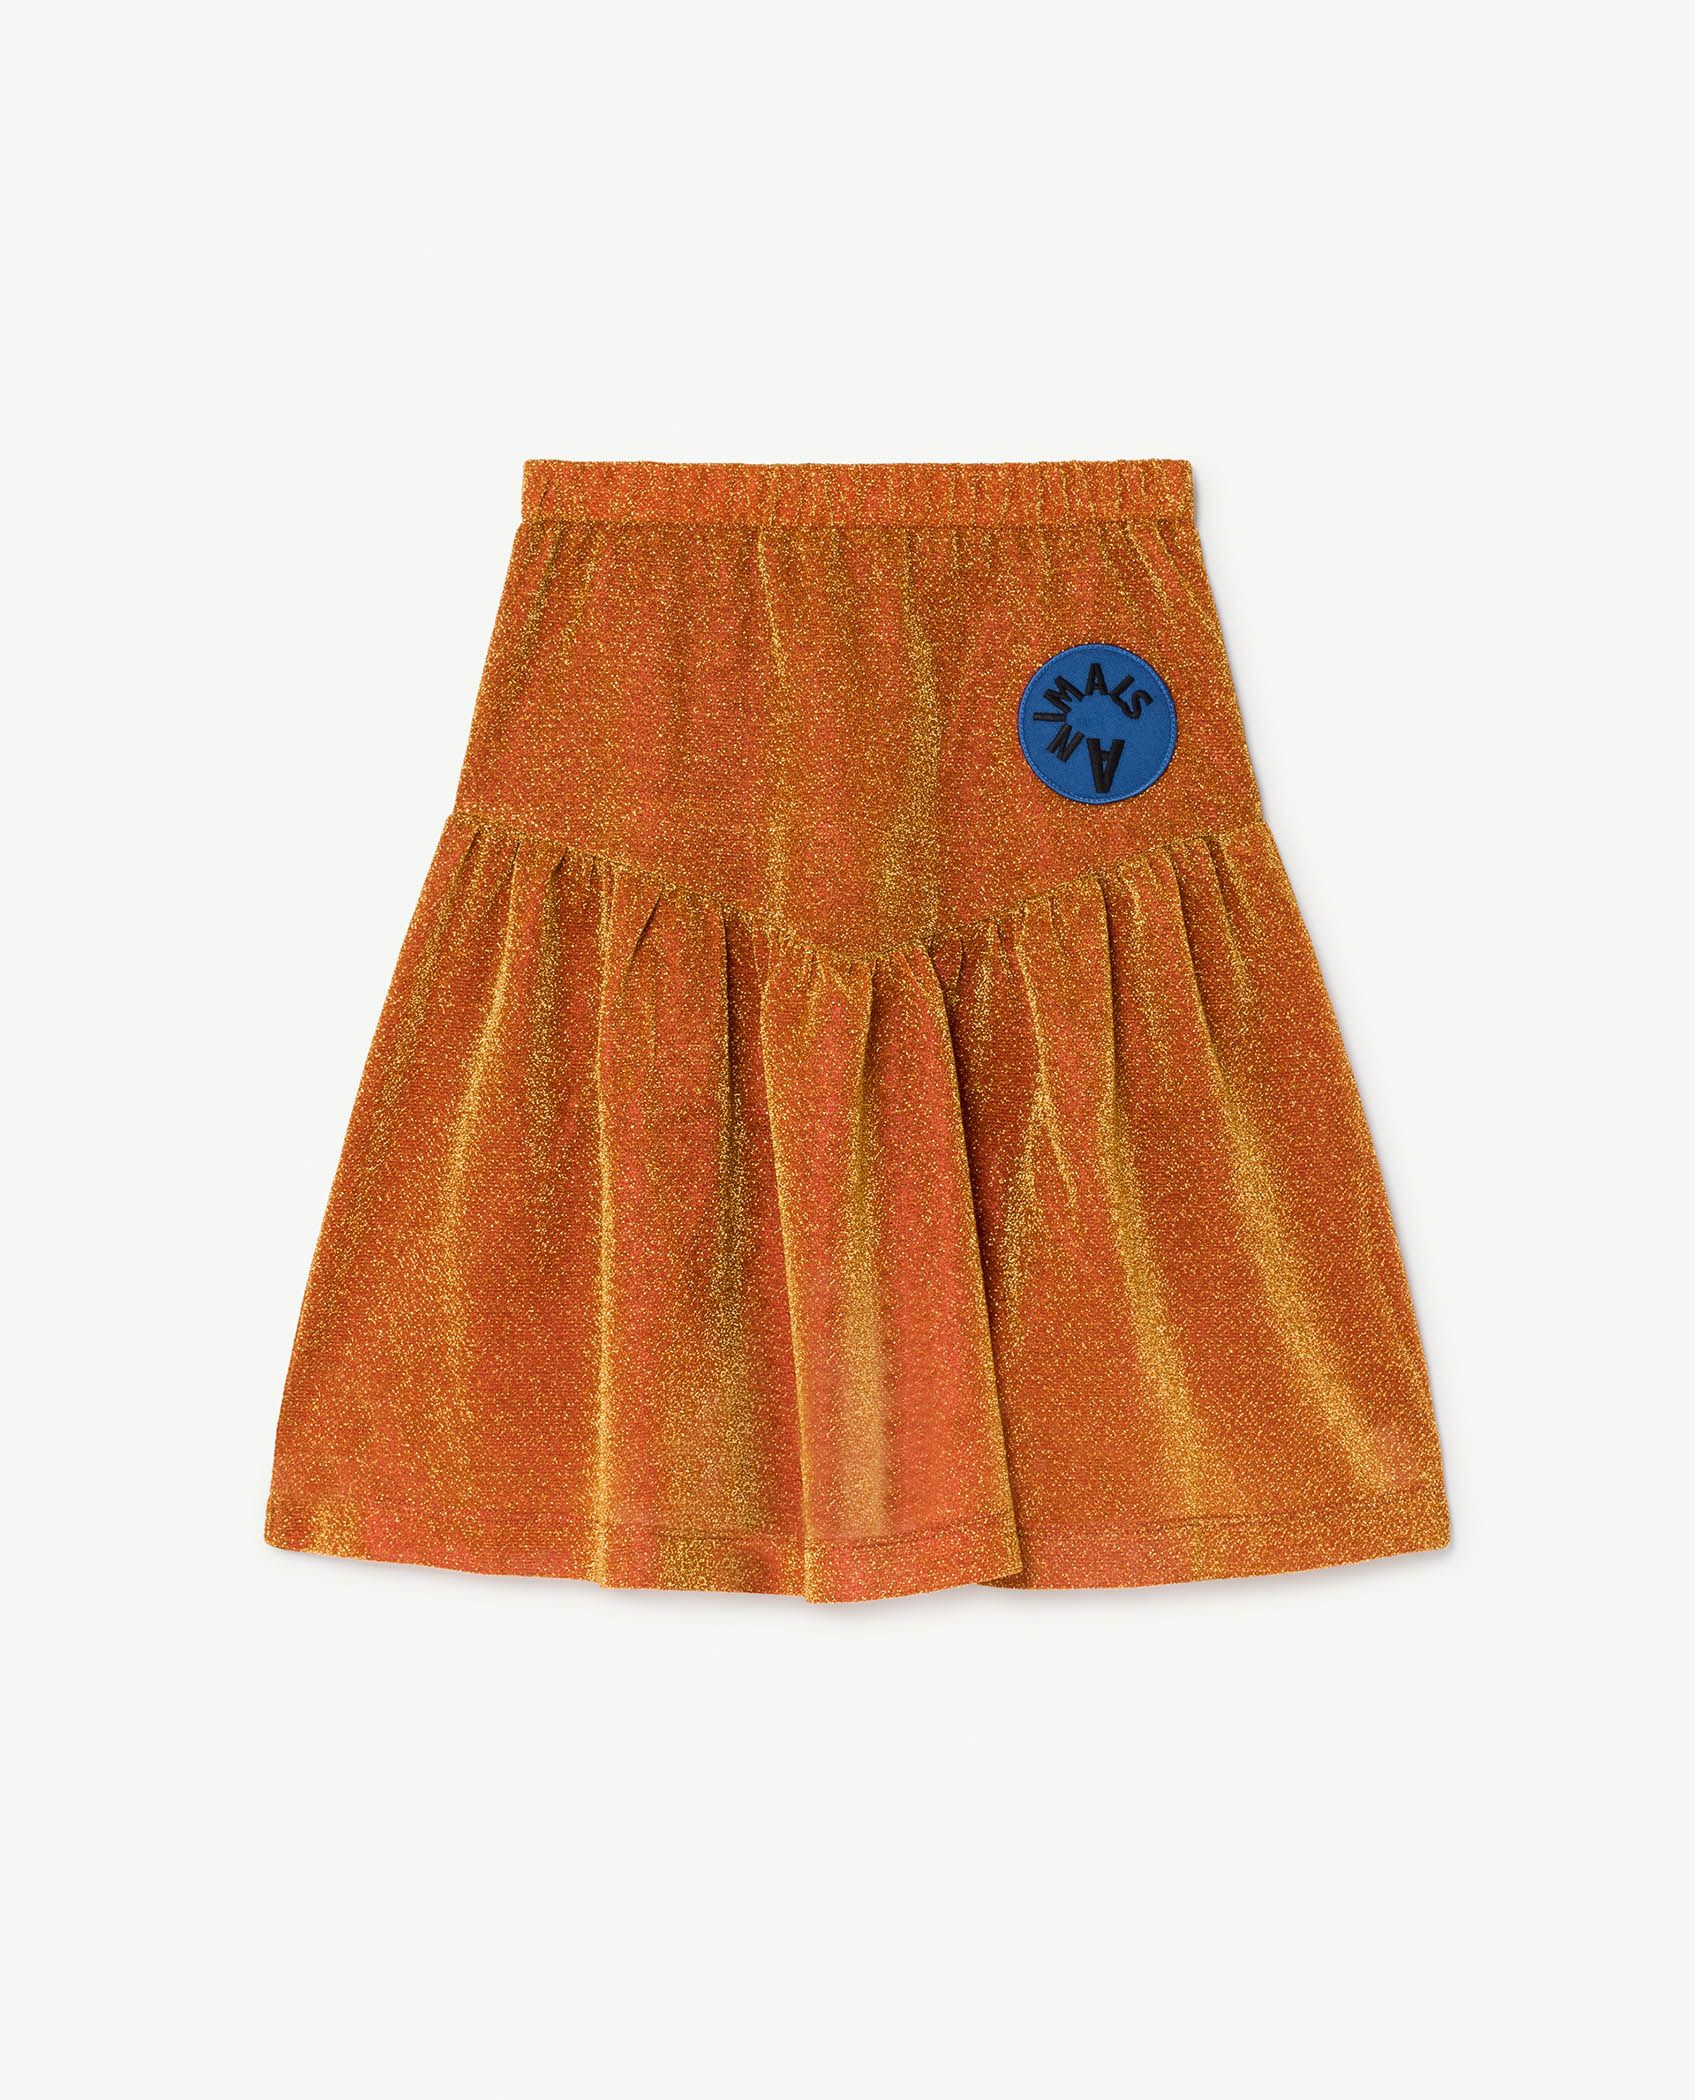 Orange Turkey Skirt img-1